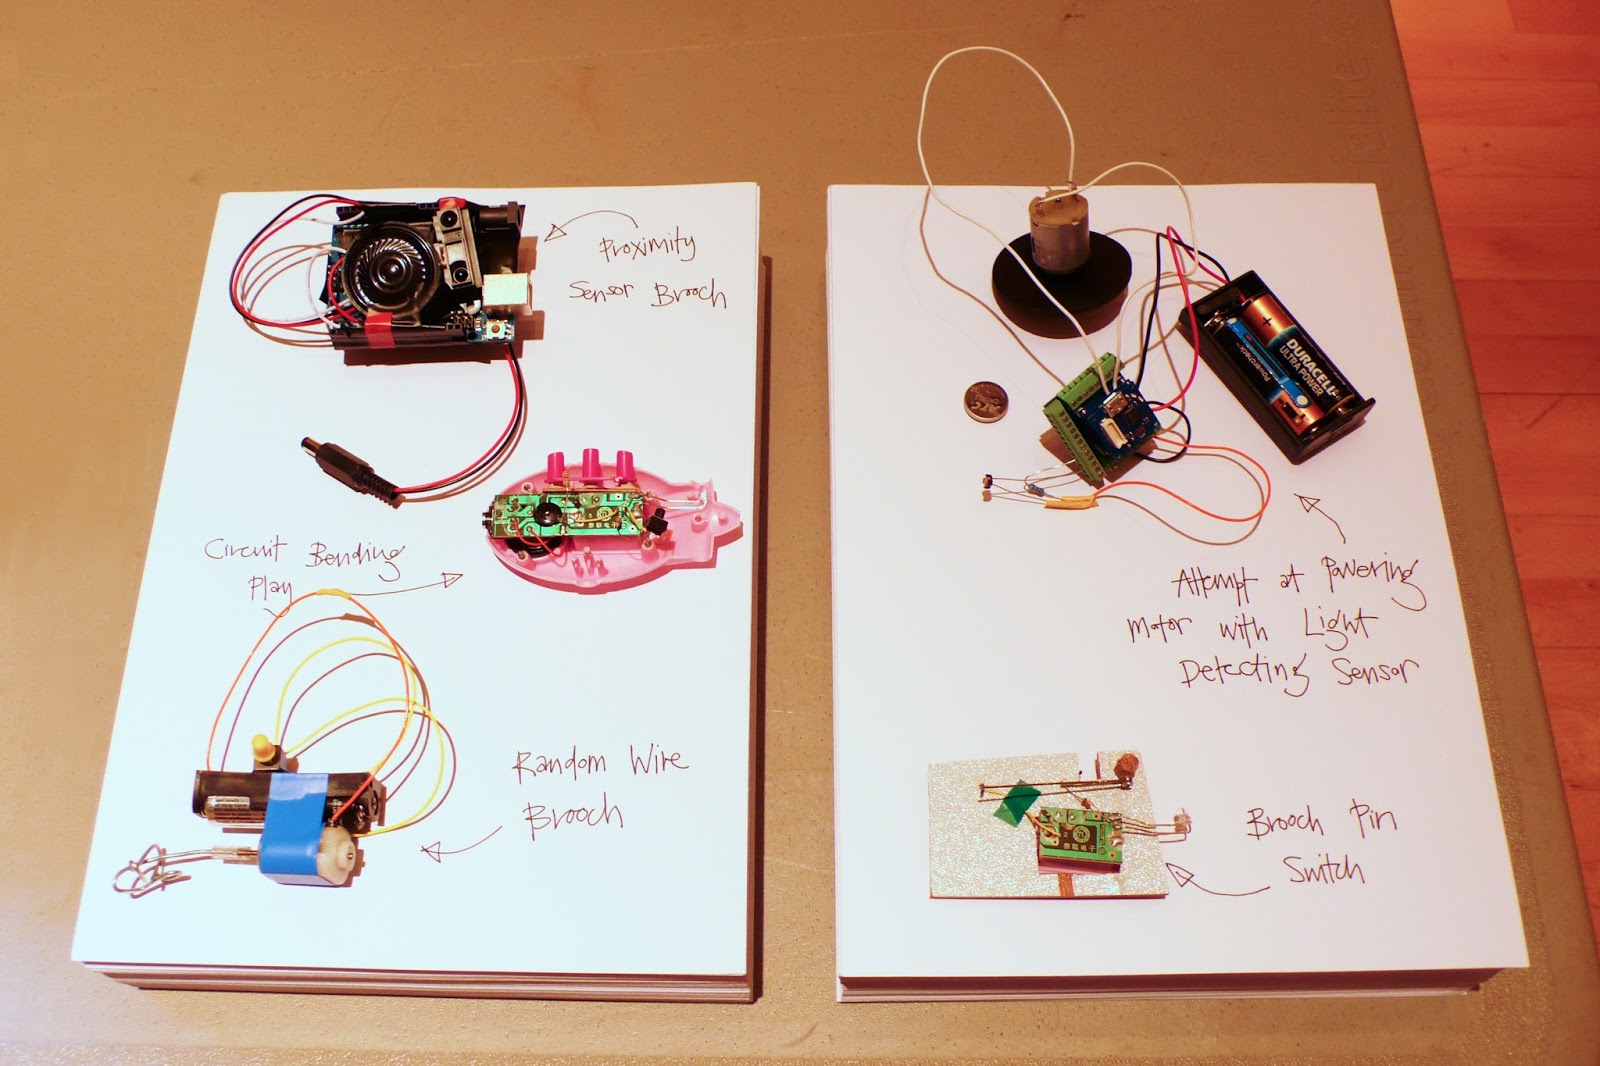 Objects created and on display for Random String Symposium, including a bit of circuit bending, some hacked pieces and a bit of arduino magic.